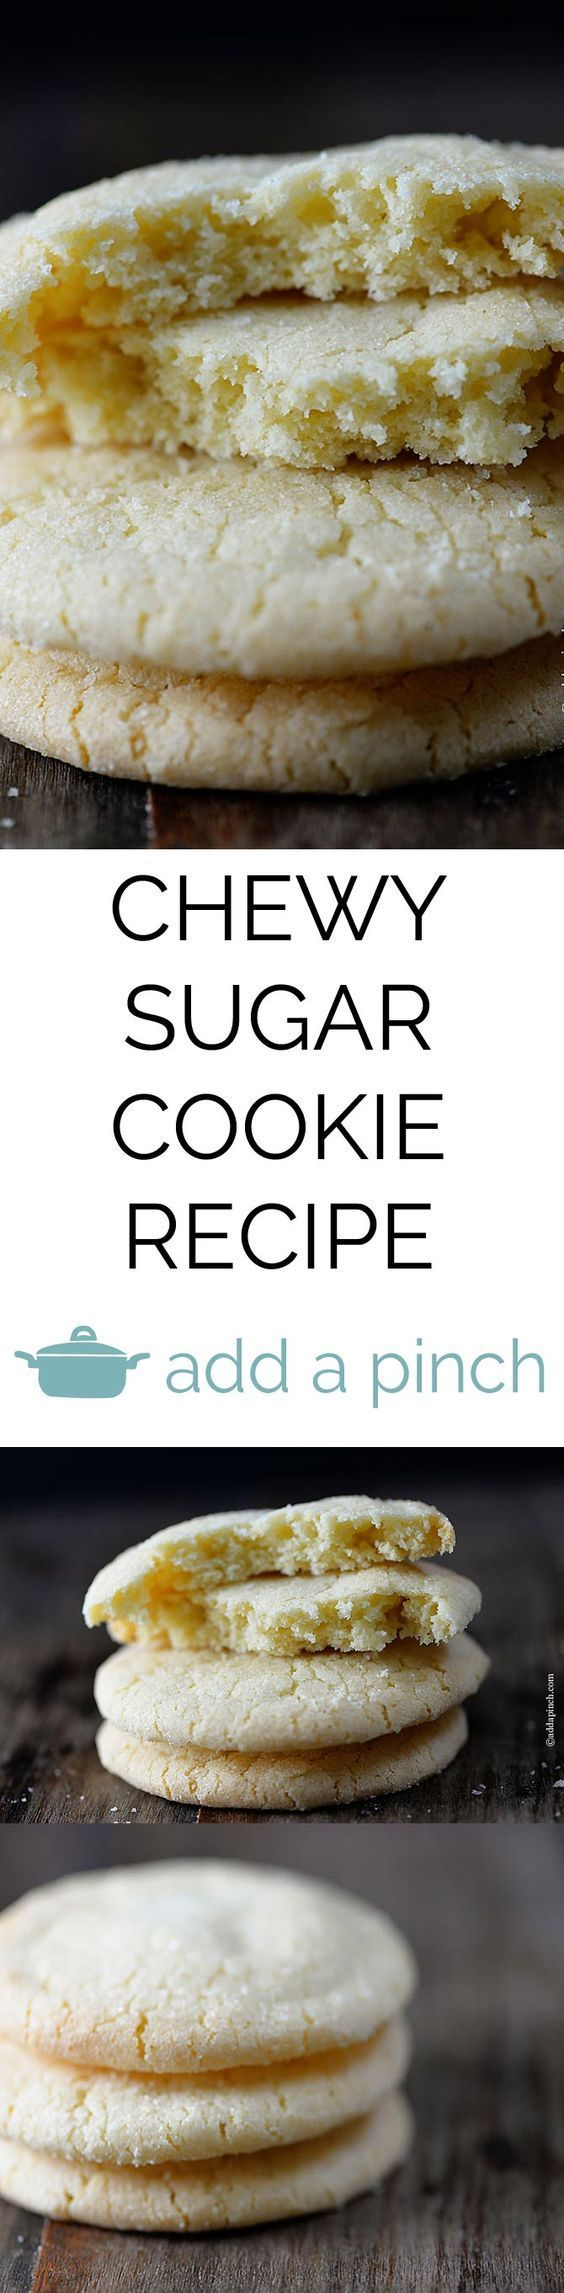 Sugar cookies make a favorite little cookie recipe for so many. Get this family-favorite recipe for chewy sugar cookies that everyone is sure to love.